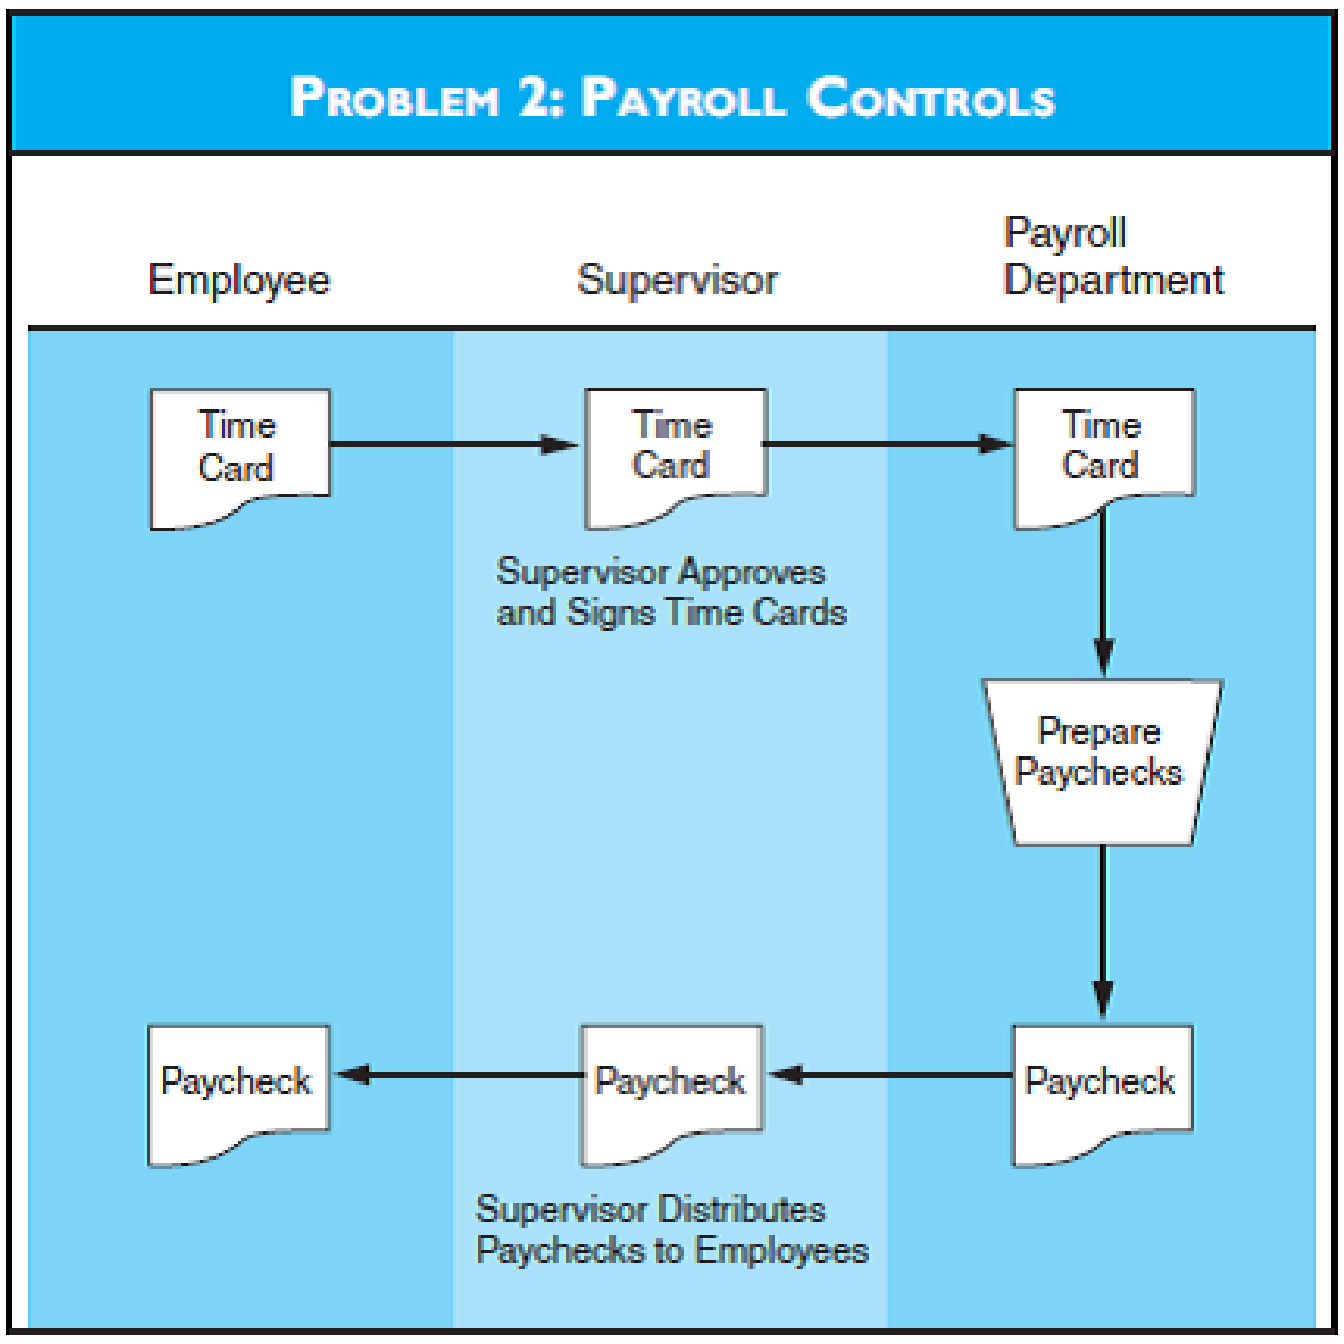 Chapter 6, Problem 2P, PAYROLL CONTROLS Refer to the flowchart for Problem 2. Required a. What risks are associated with